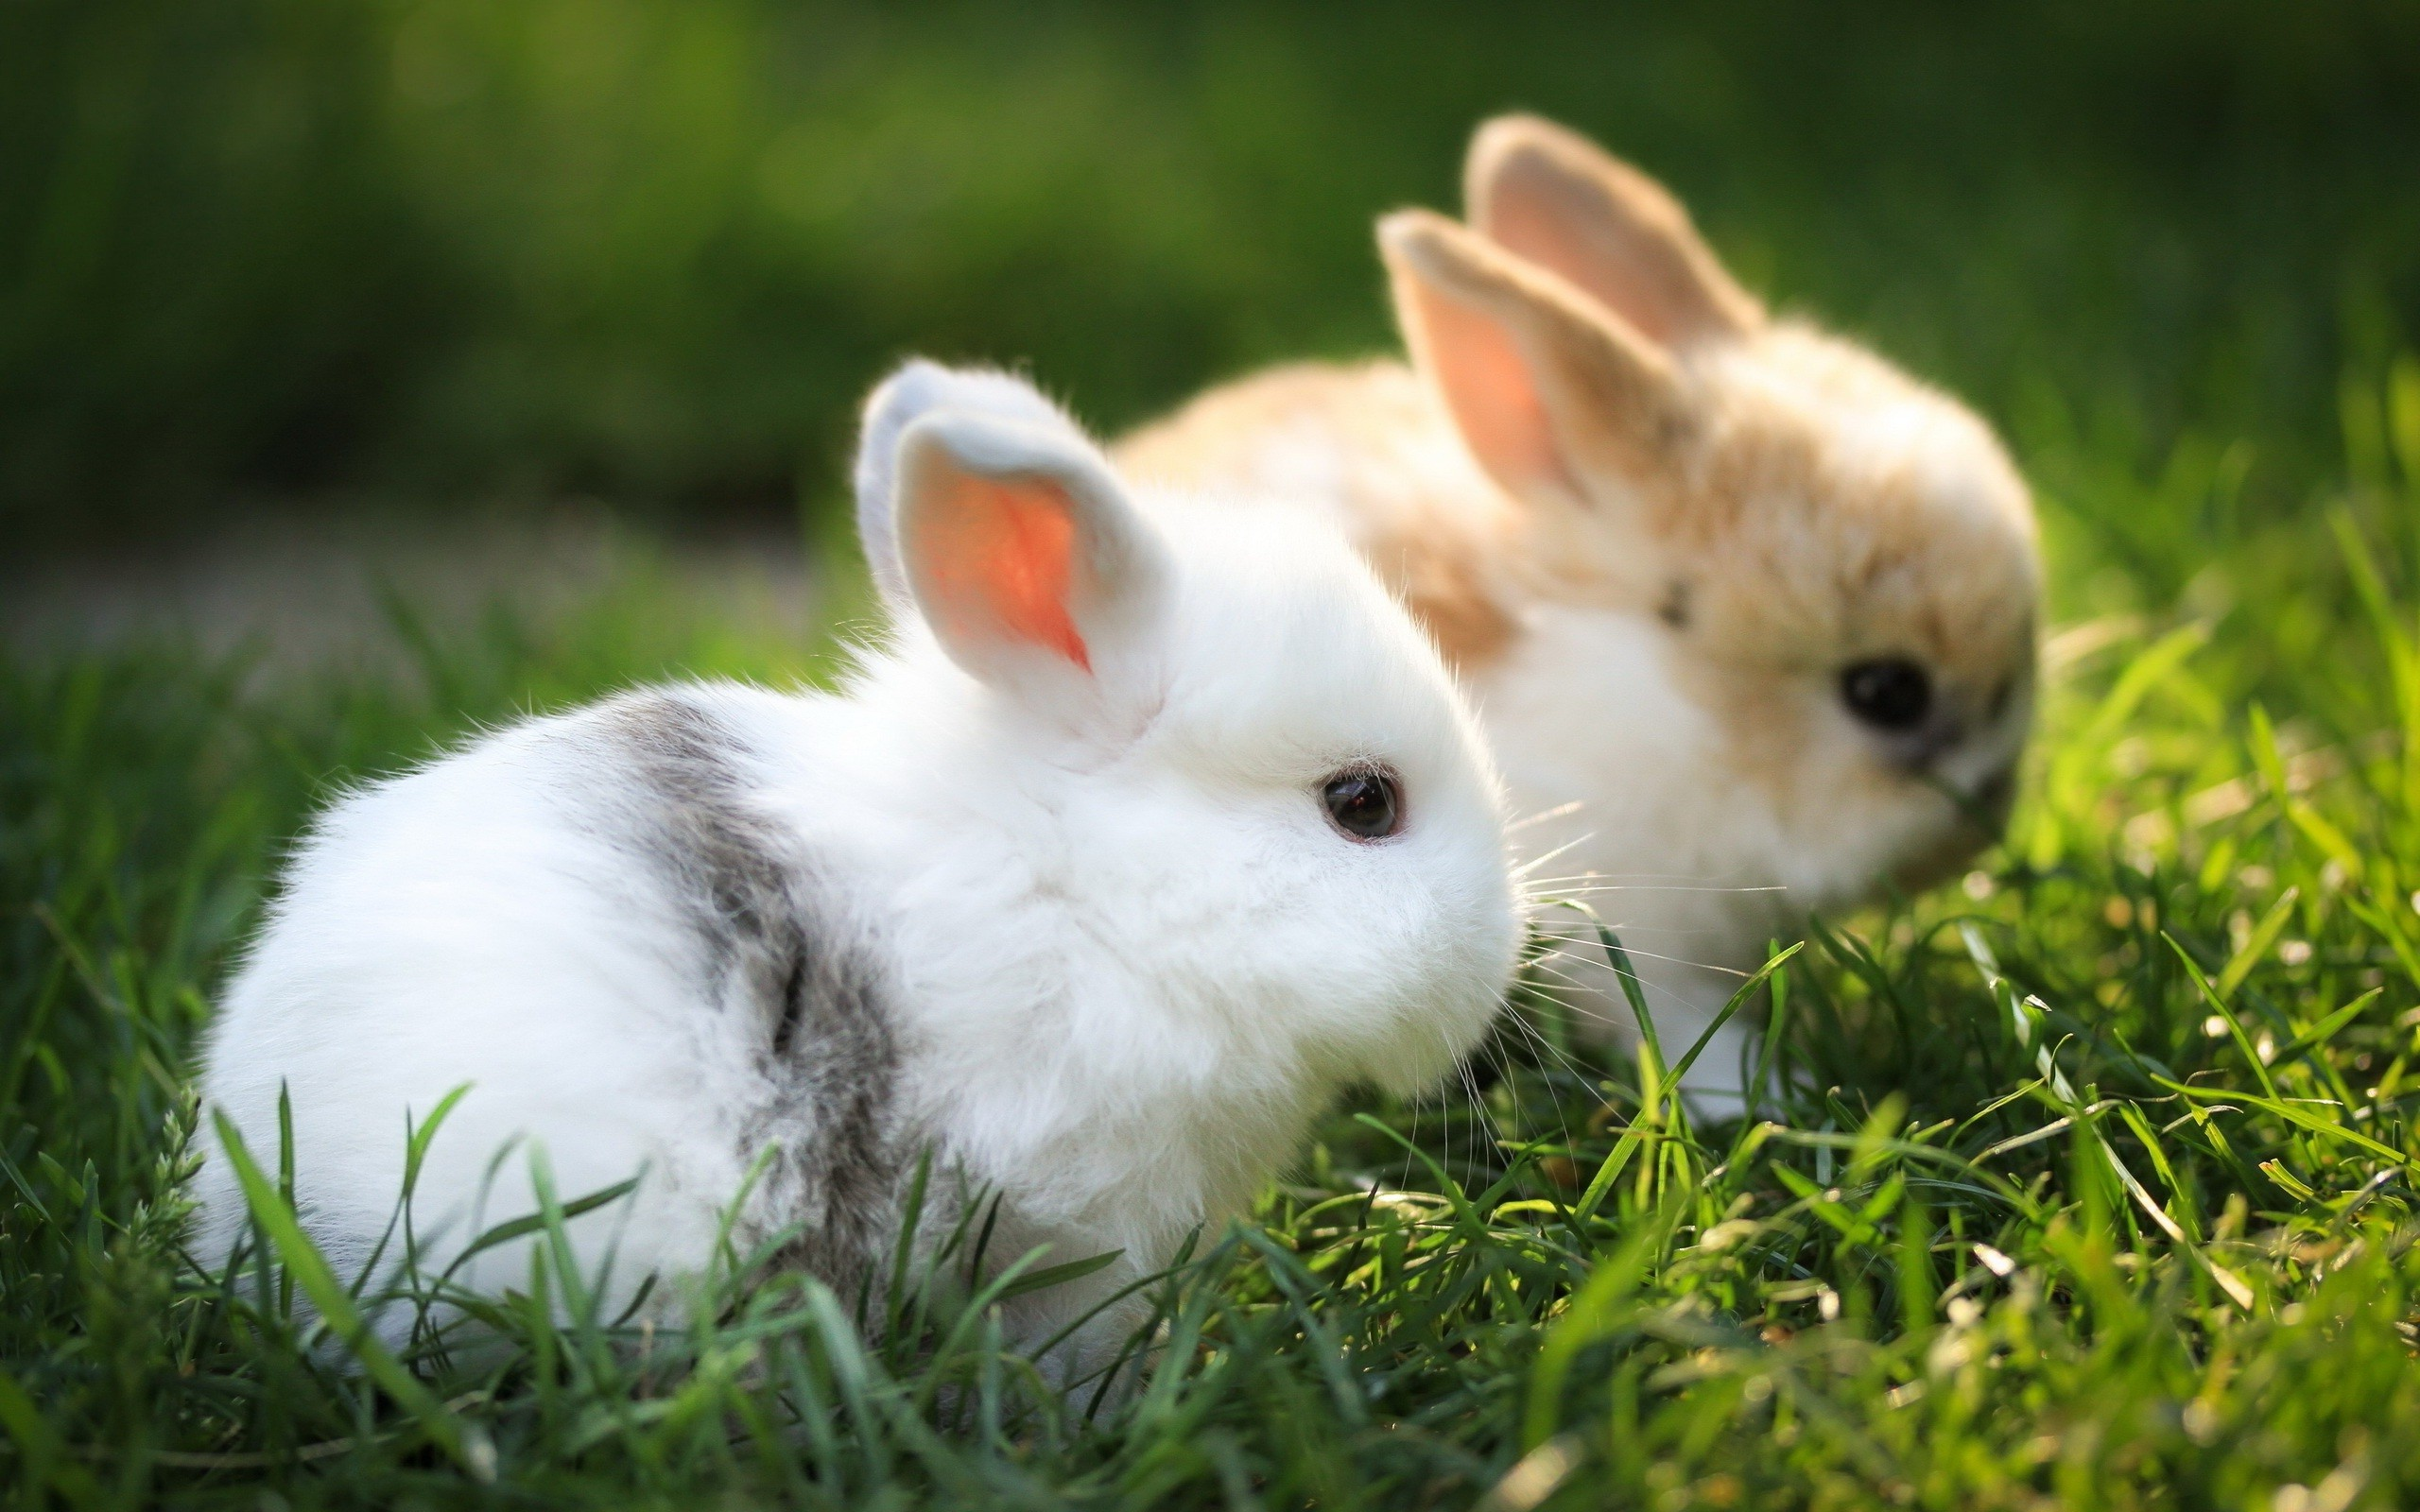 pics photos cute baby bunnies wallpaper pictures 3